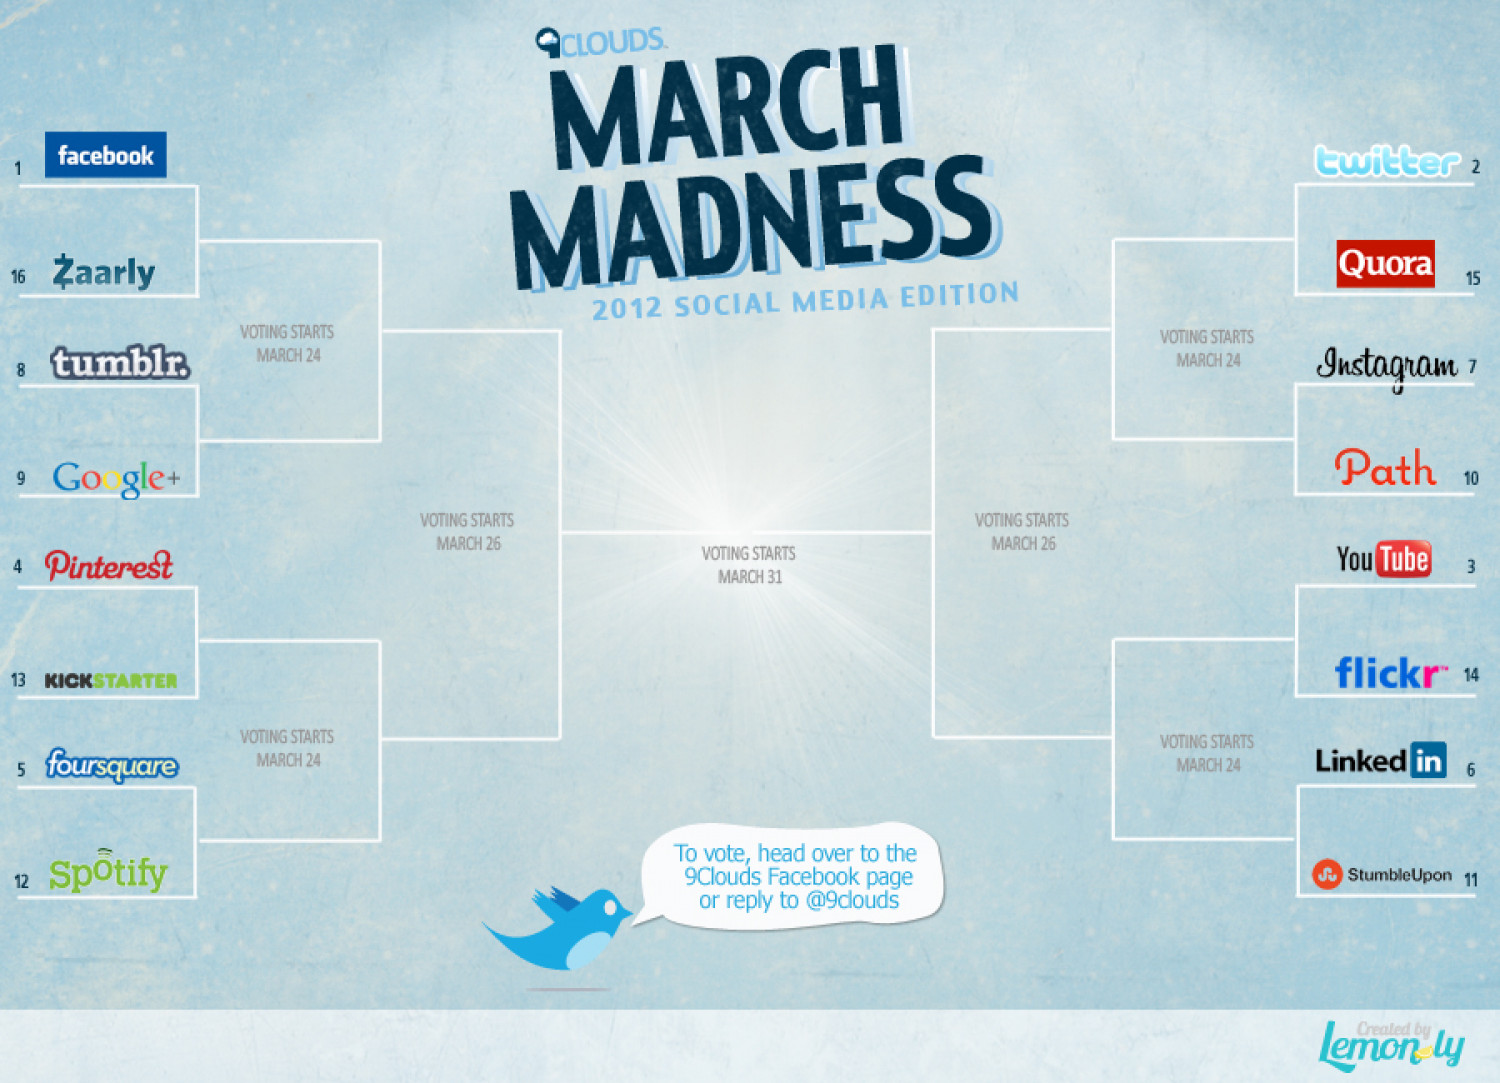 March Madness 2012 Social Media Edition Infographic